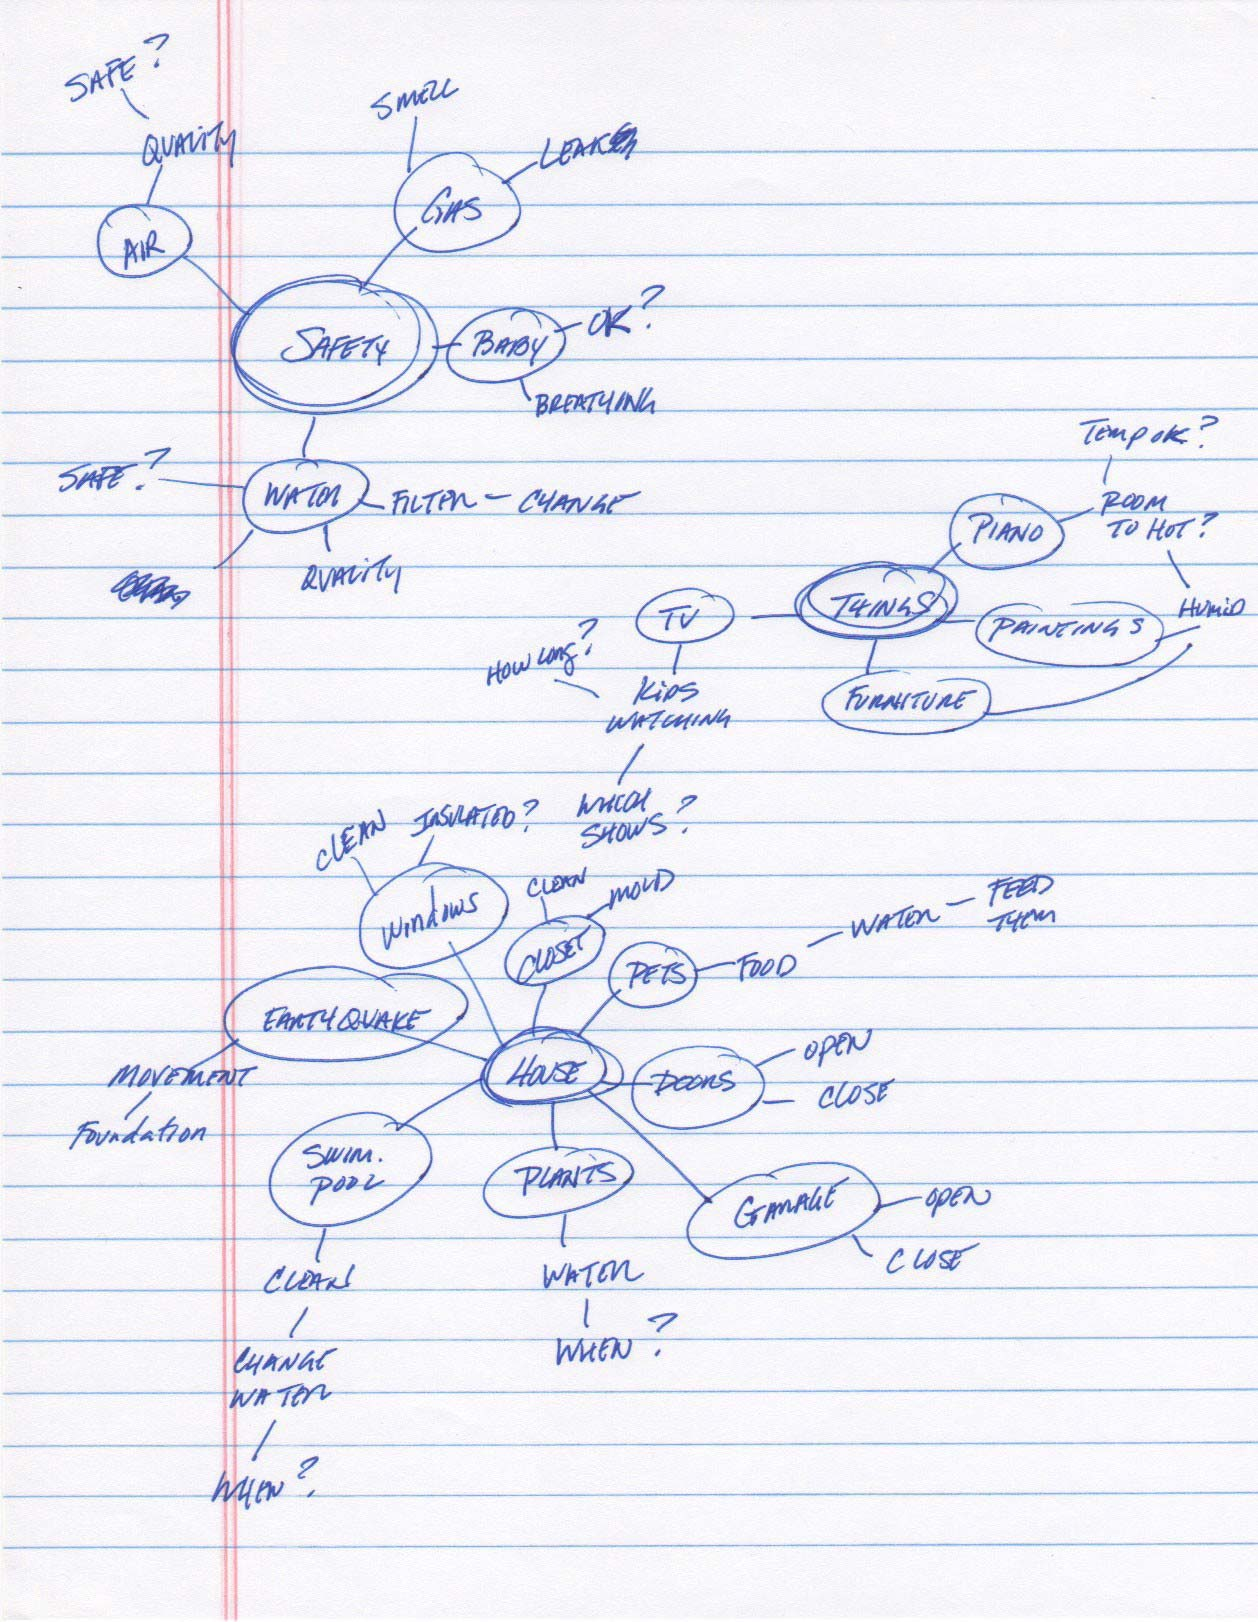 Notes from rapid brainstorming using word associations